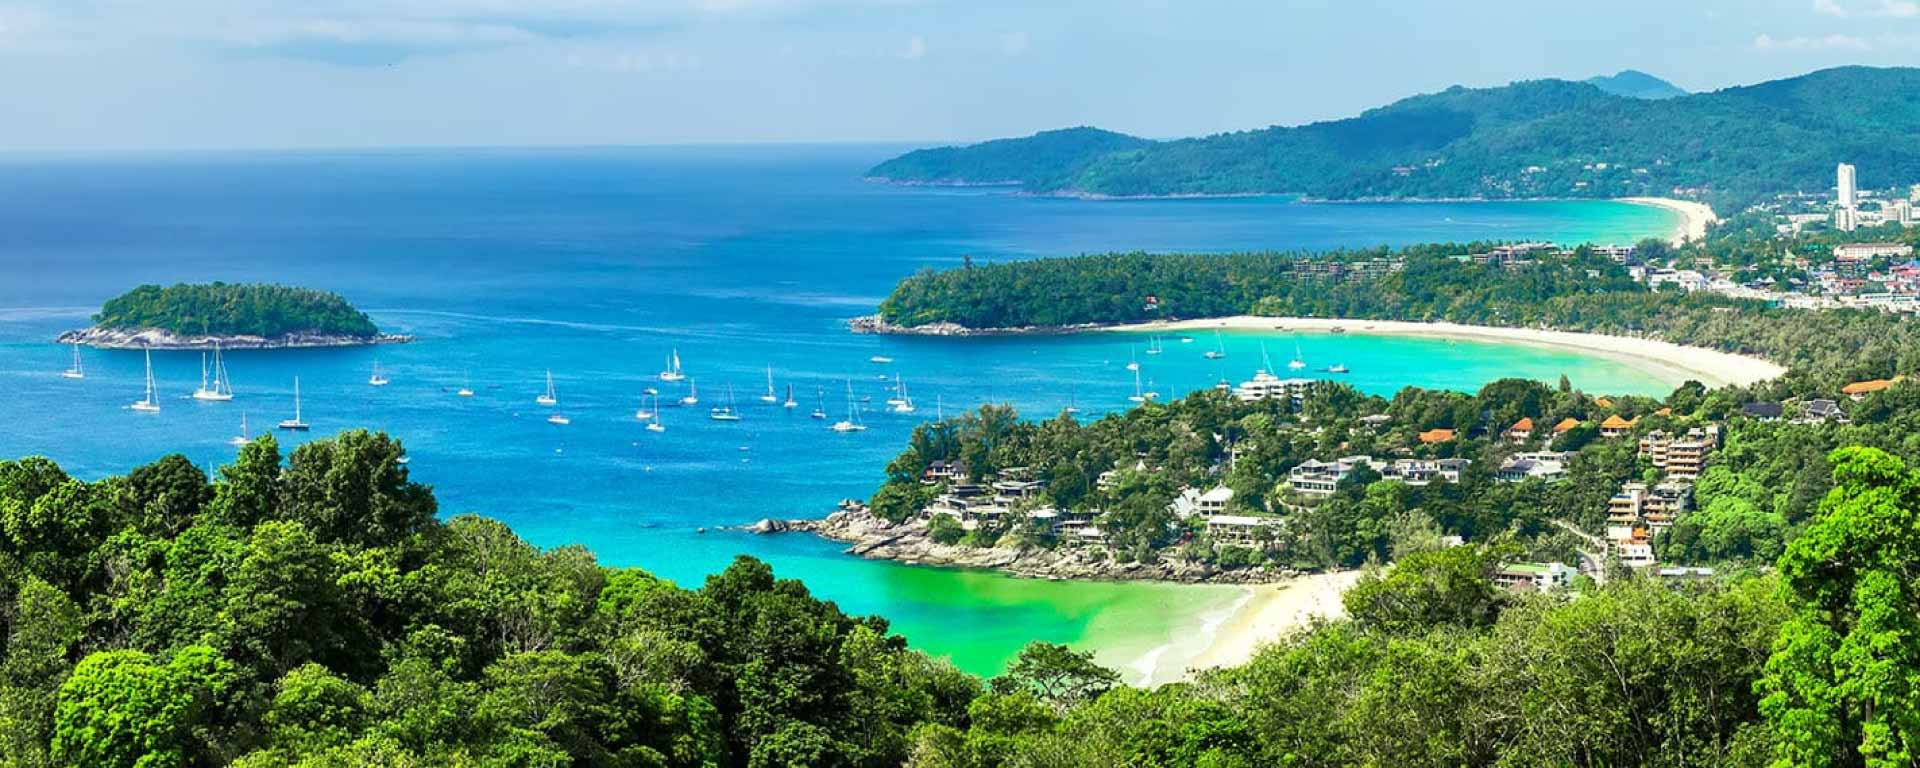 Thailand Holiday Deal Packages, Thailand Tour Packages  Dpauls Travel-6501